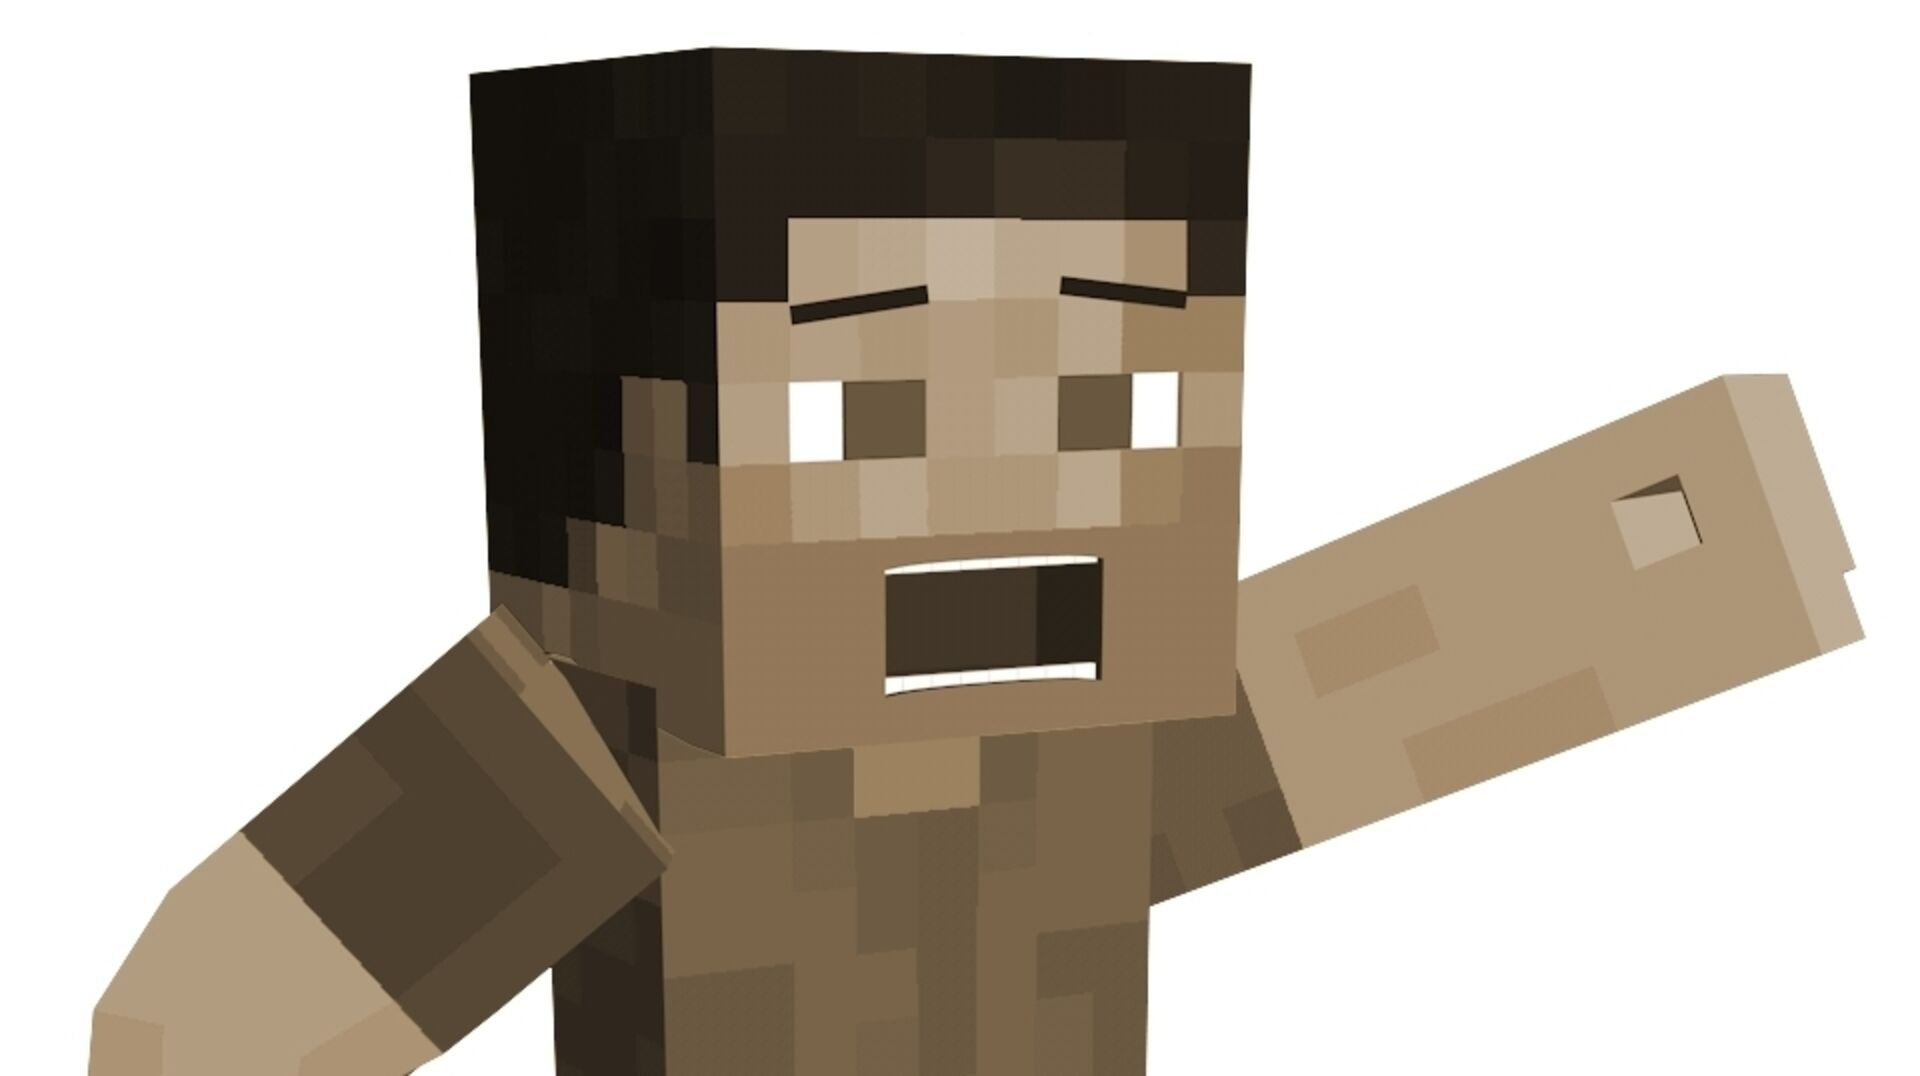 Now you can play a 10-year old version of Minecraft in your